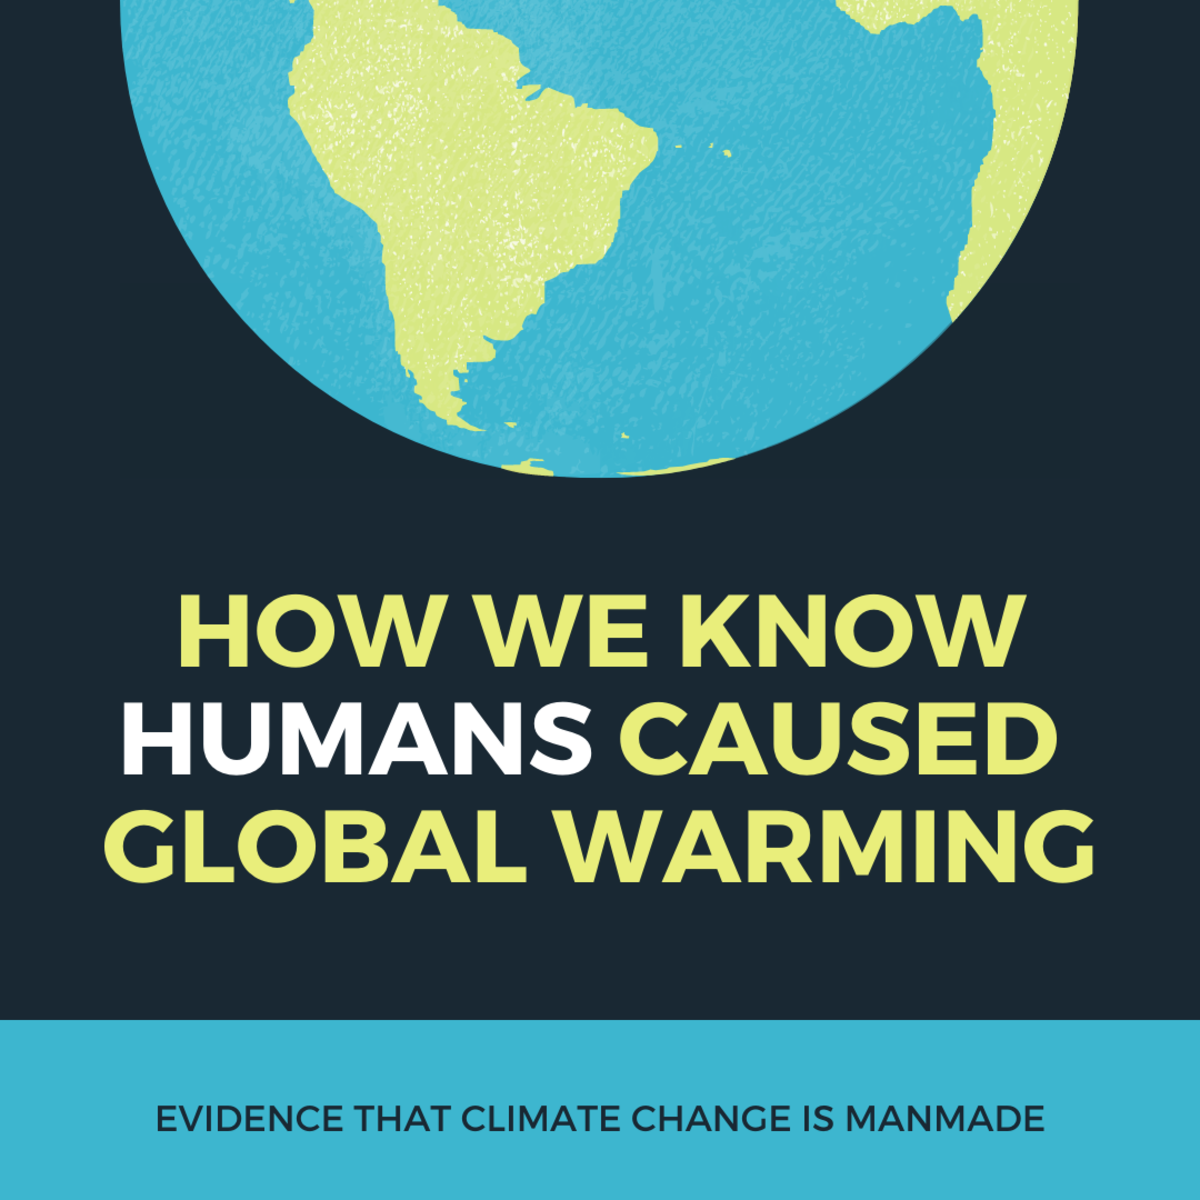 Evidence That Global Warming Is Being Caused by Humans